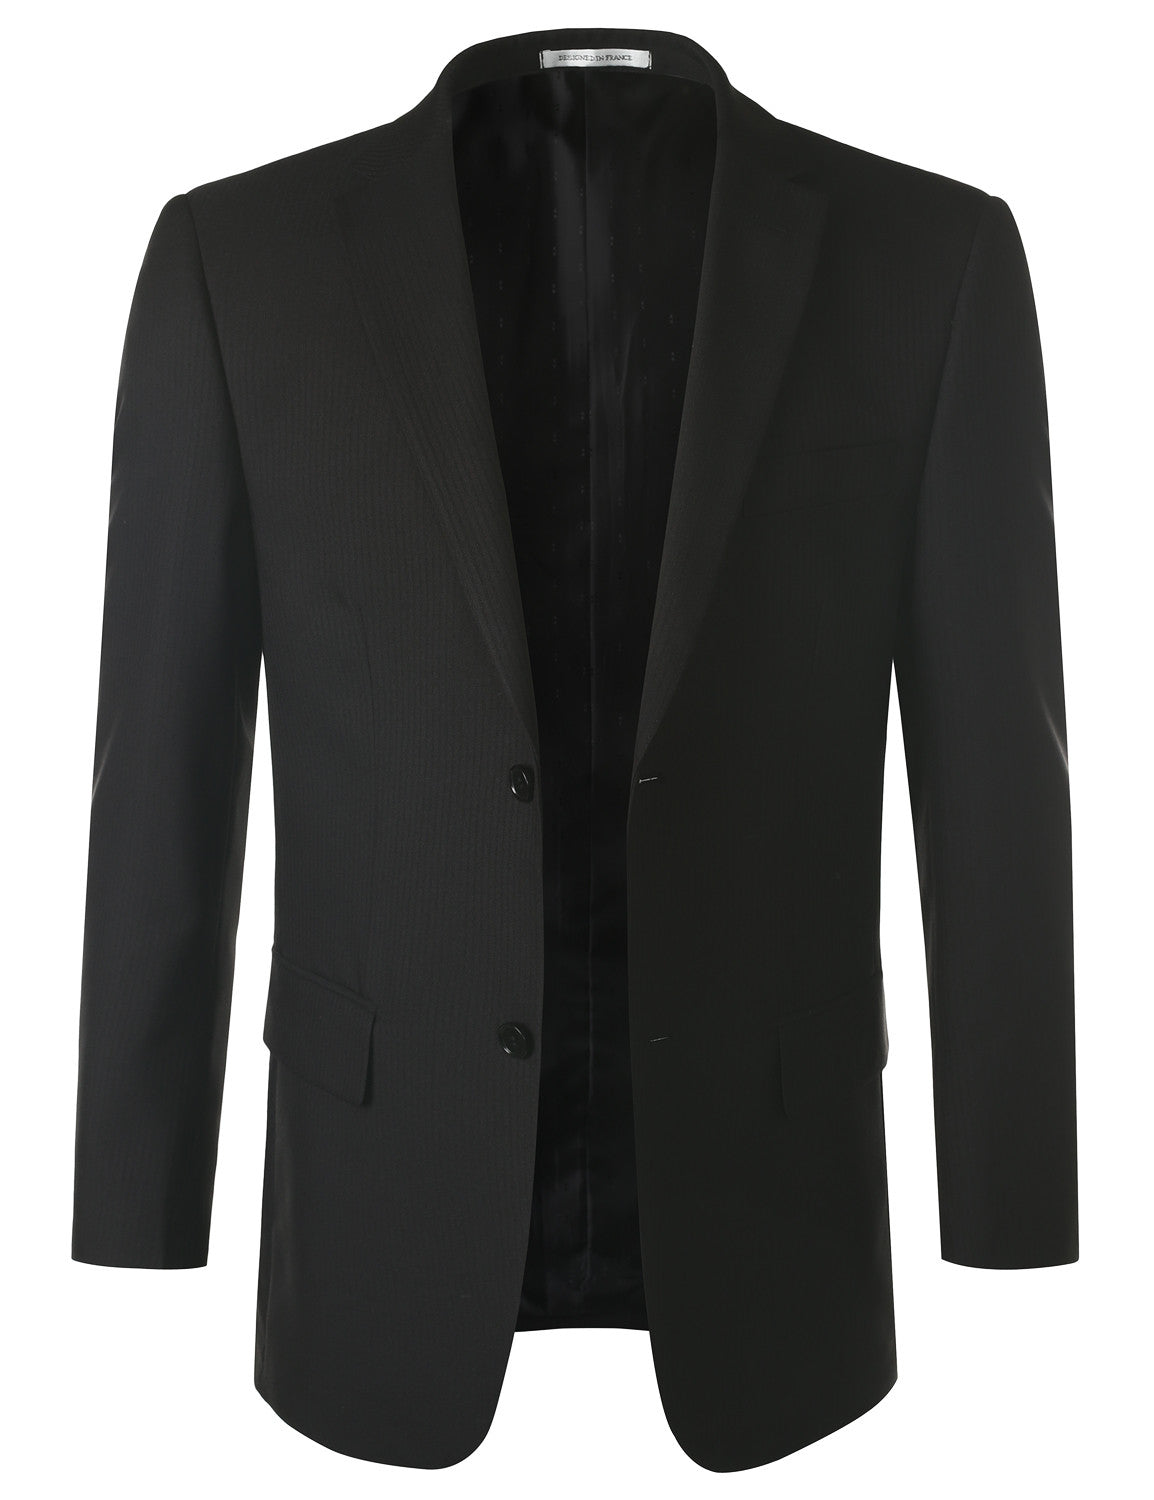 01BLACK Striped Black Modern Fit 2 Piece Suit- MONDAYSUIT